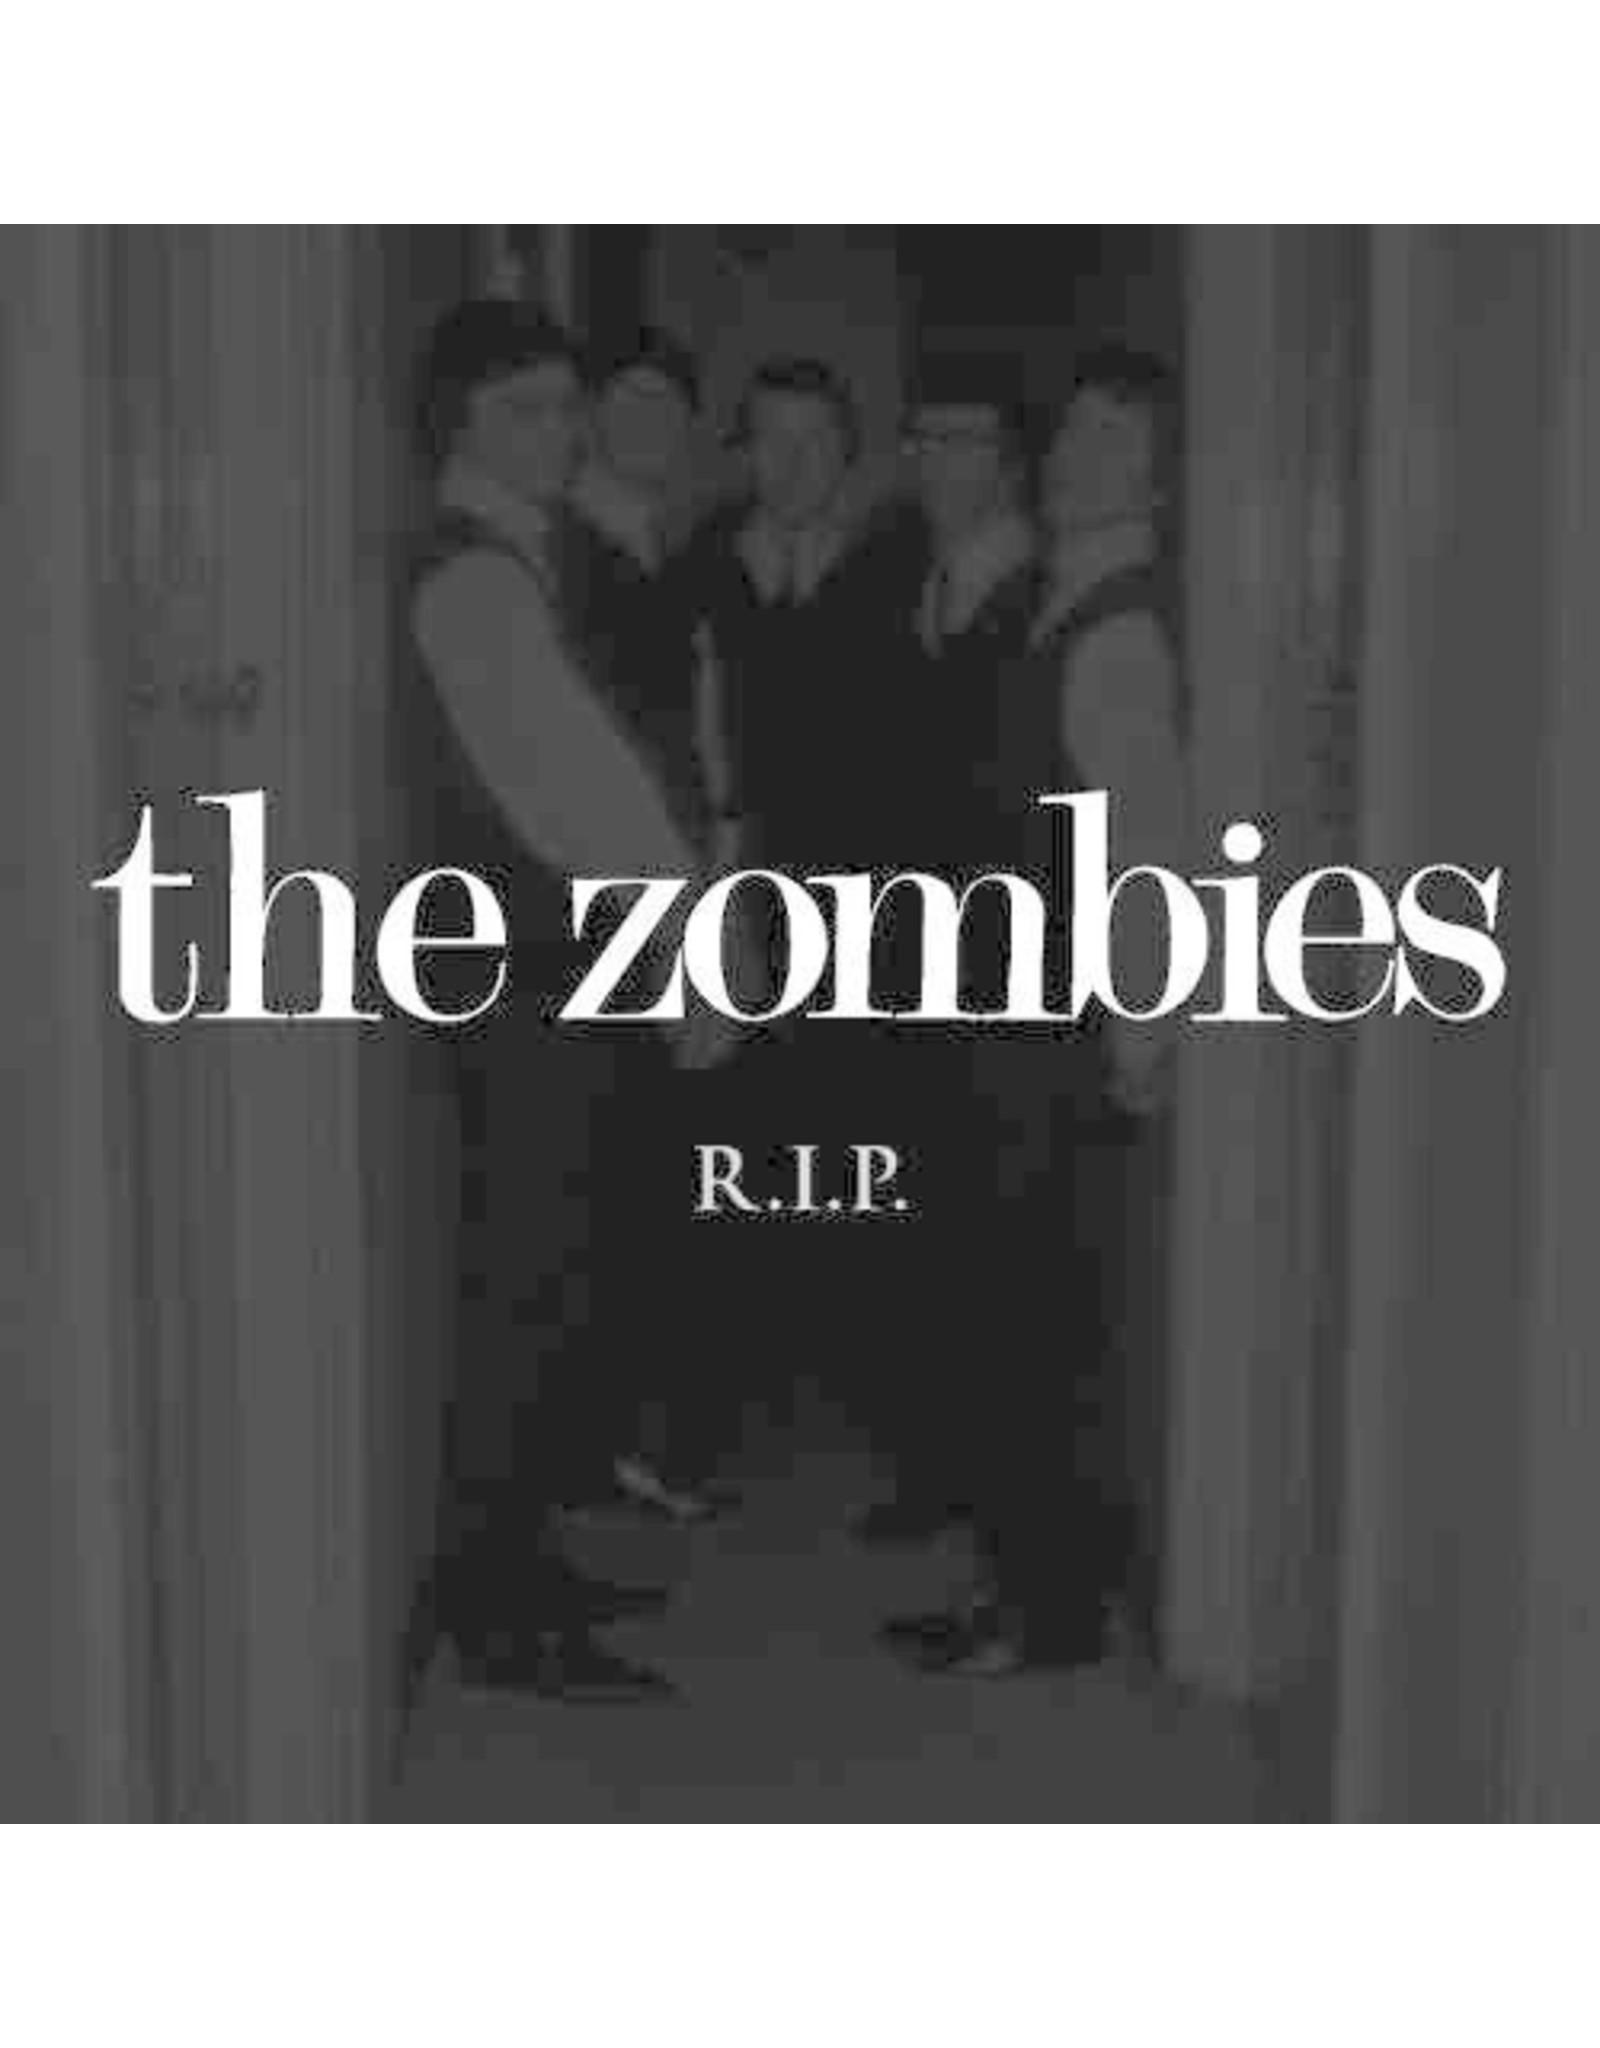 New Vinyl The Zombies - R.I.P. LP